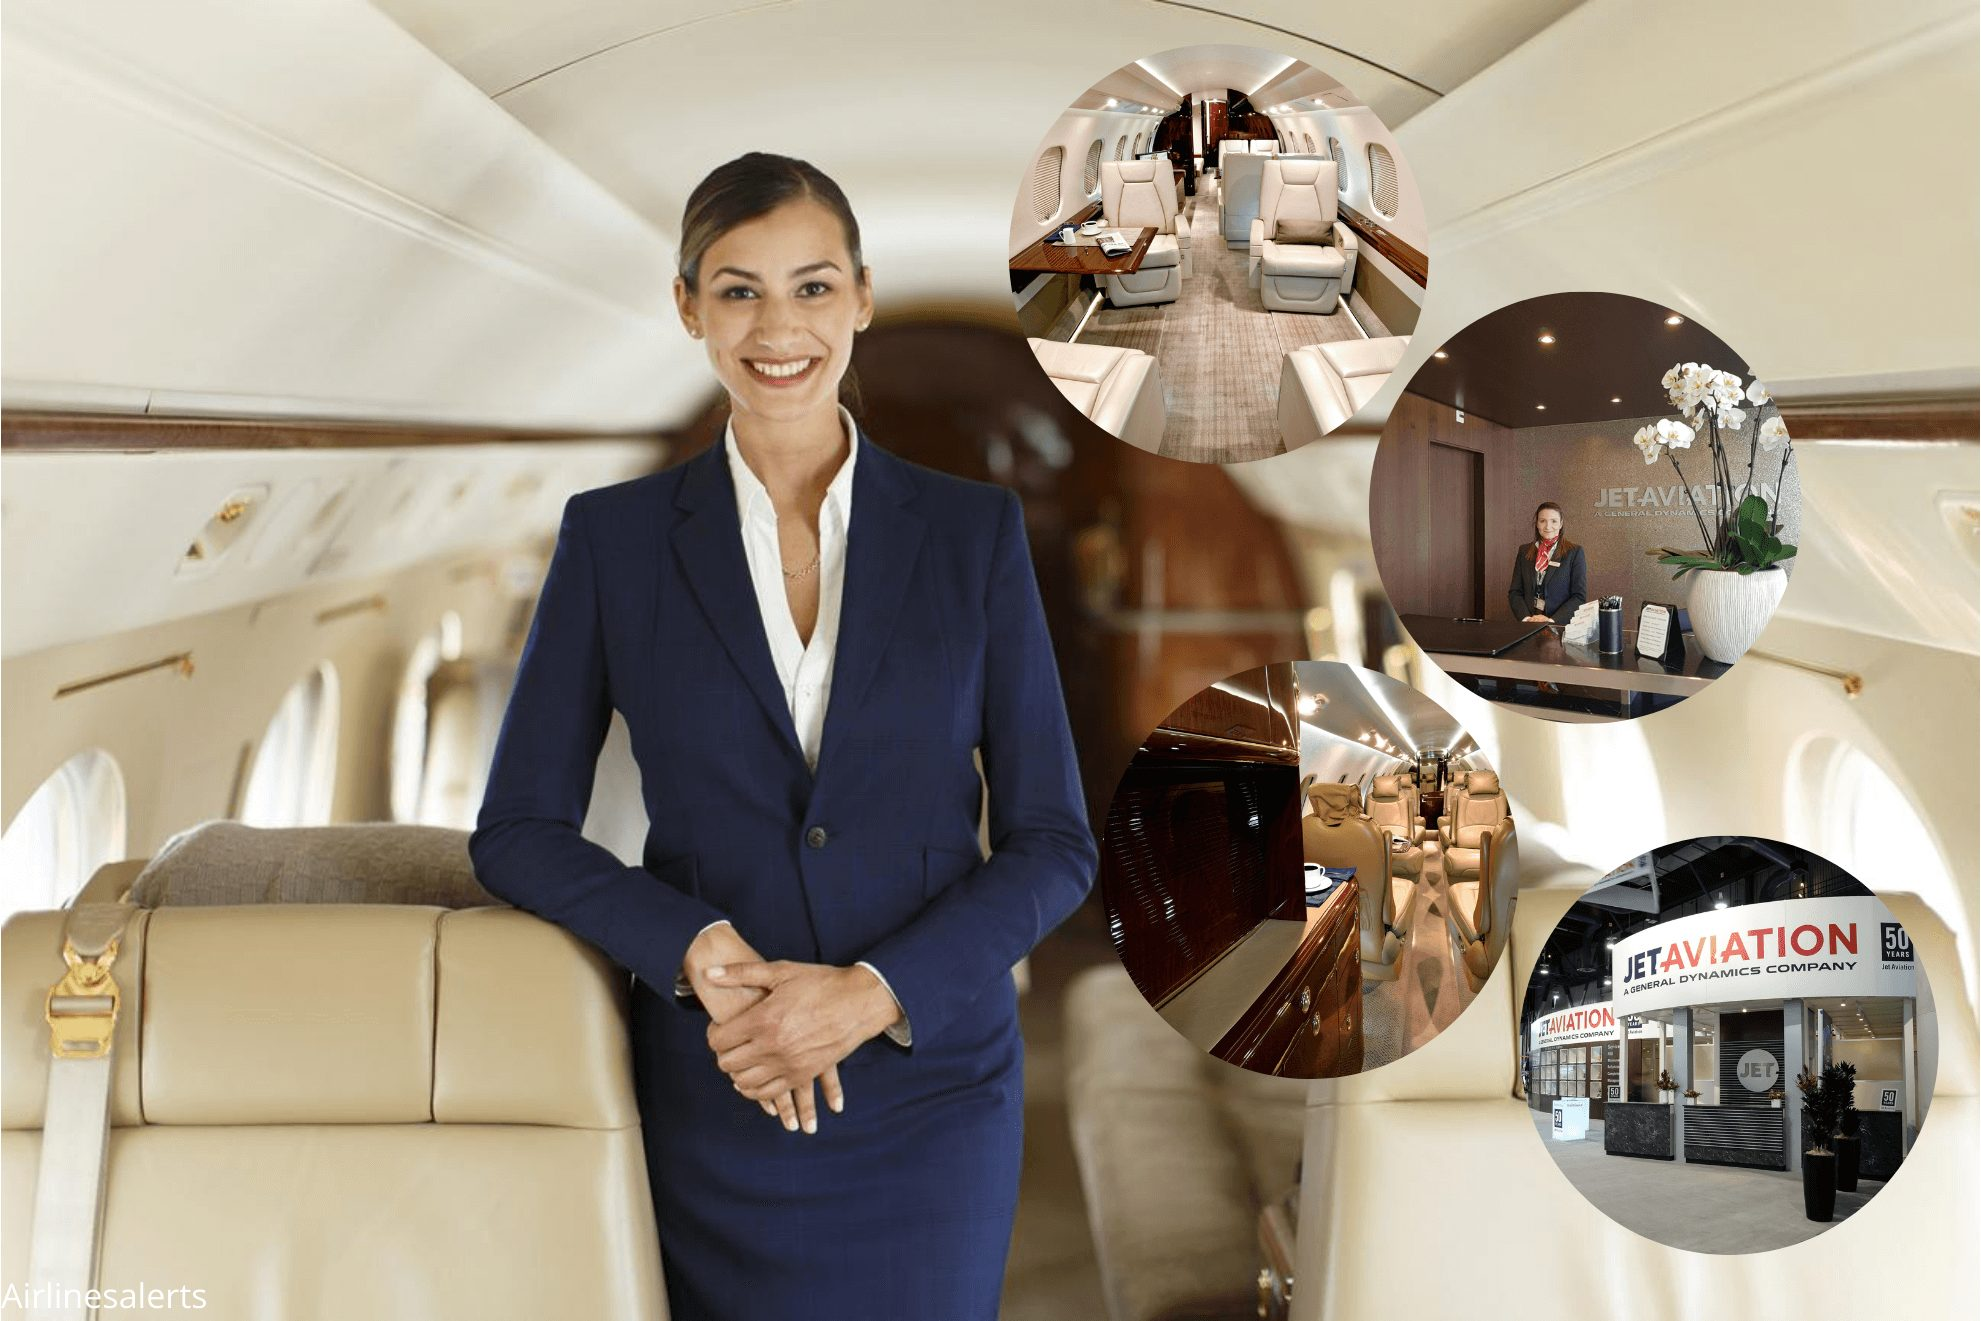 Jet Aviation VIP CABIN Attendant Recruitment 2021 UAE - Apply Online